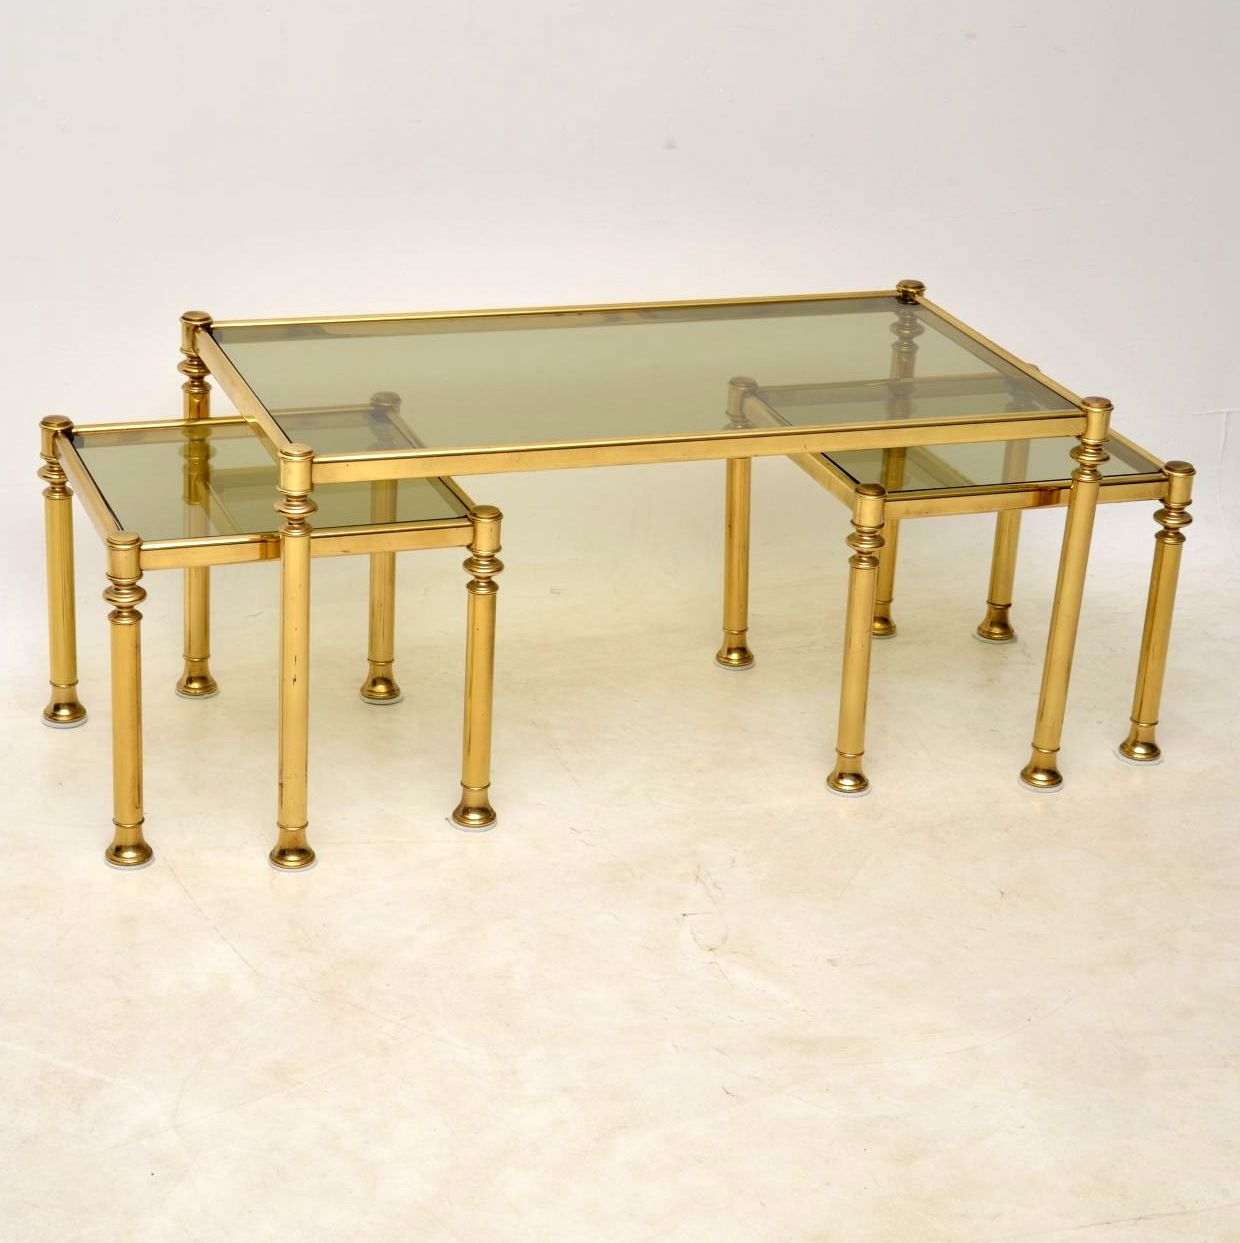 Glass Nest Coffee Tables 1970s Brass And Glass Nesting Coffee Table Retrospective